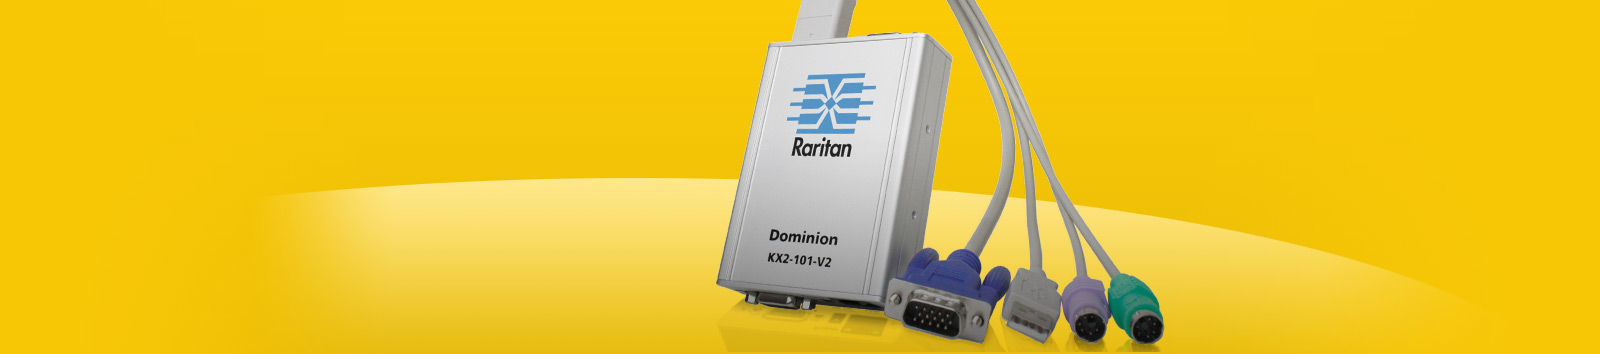 Raritan Dominion DKX2-101-V2 1 User KVM Over IP KVM Gateway